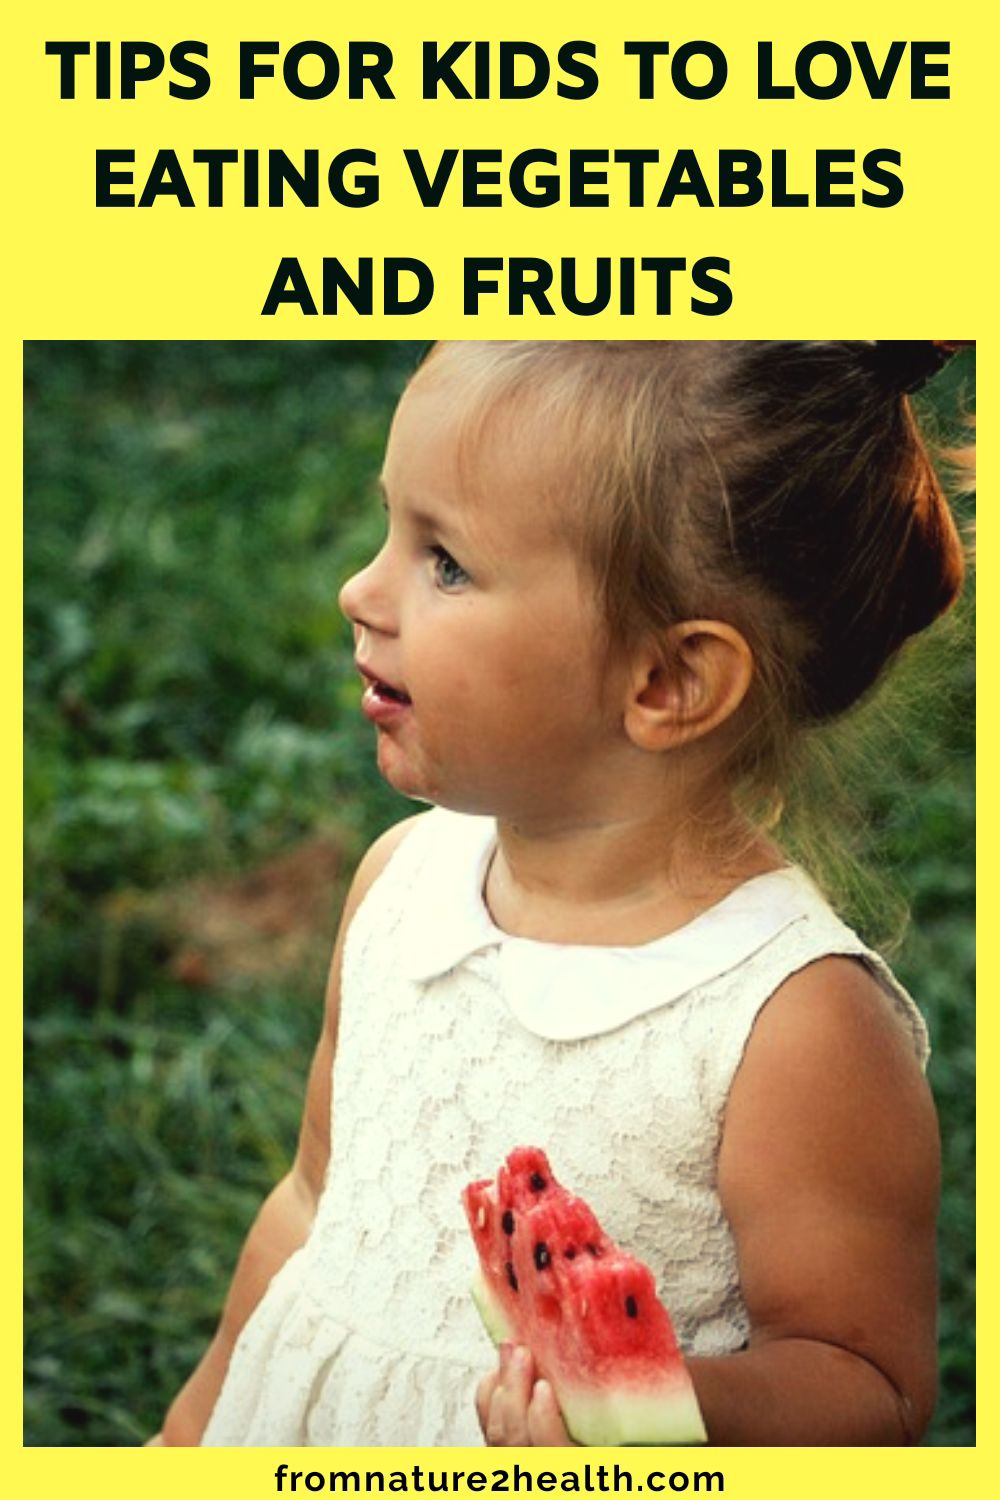 Tips for Kids to Love Eating Vegetables and Fruits